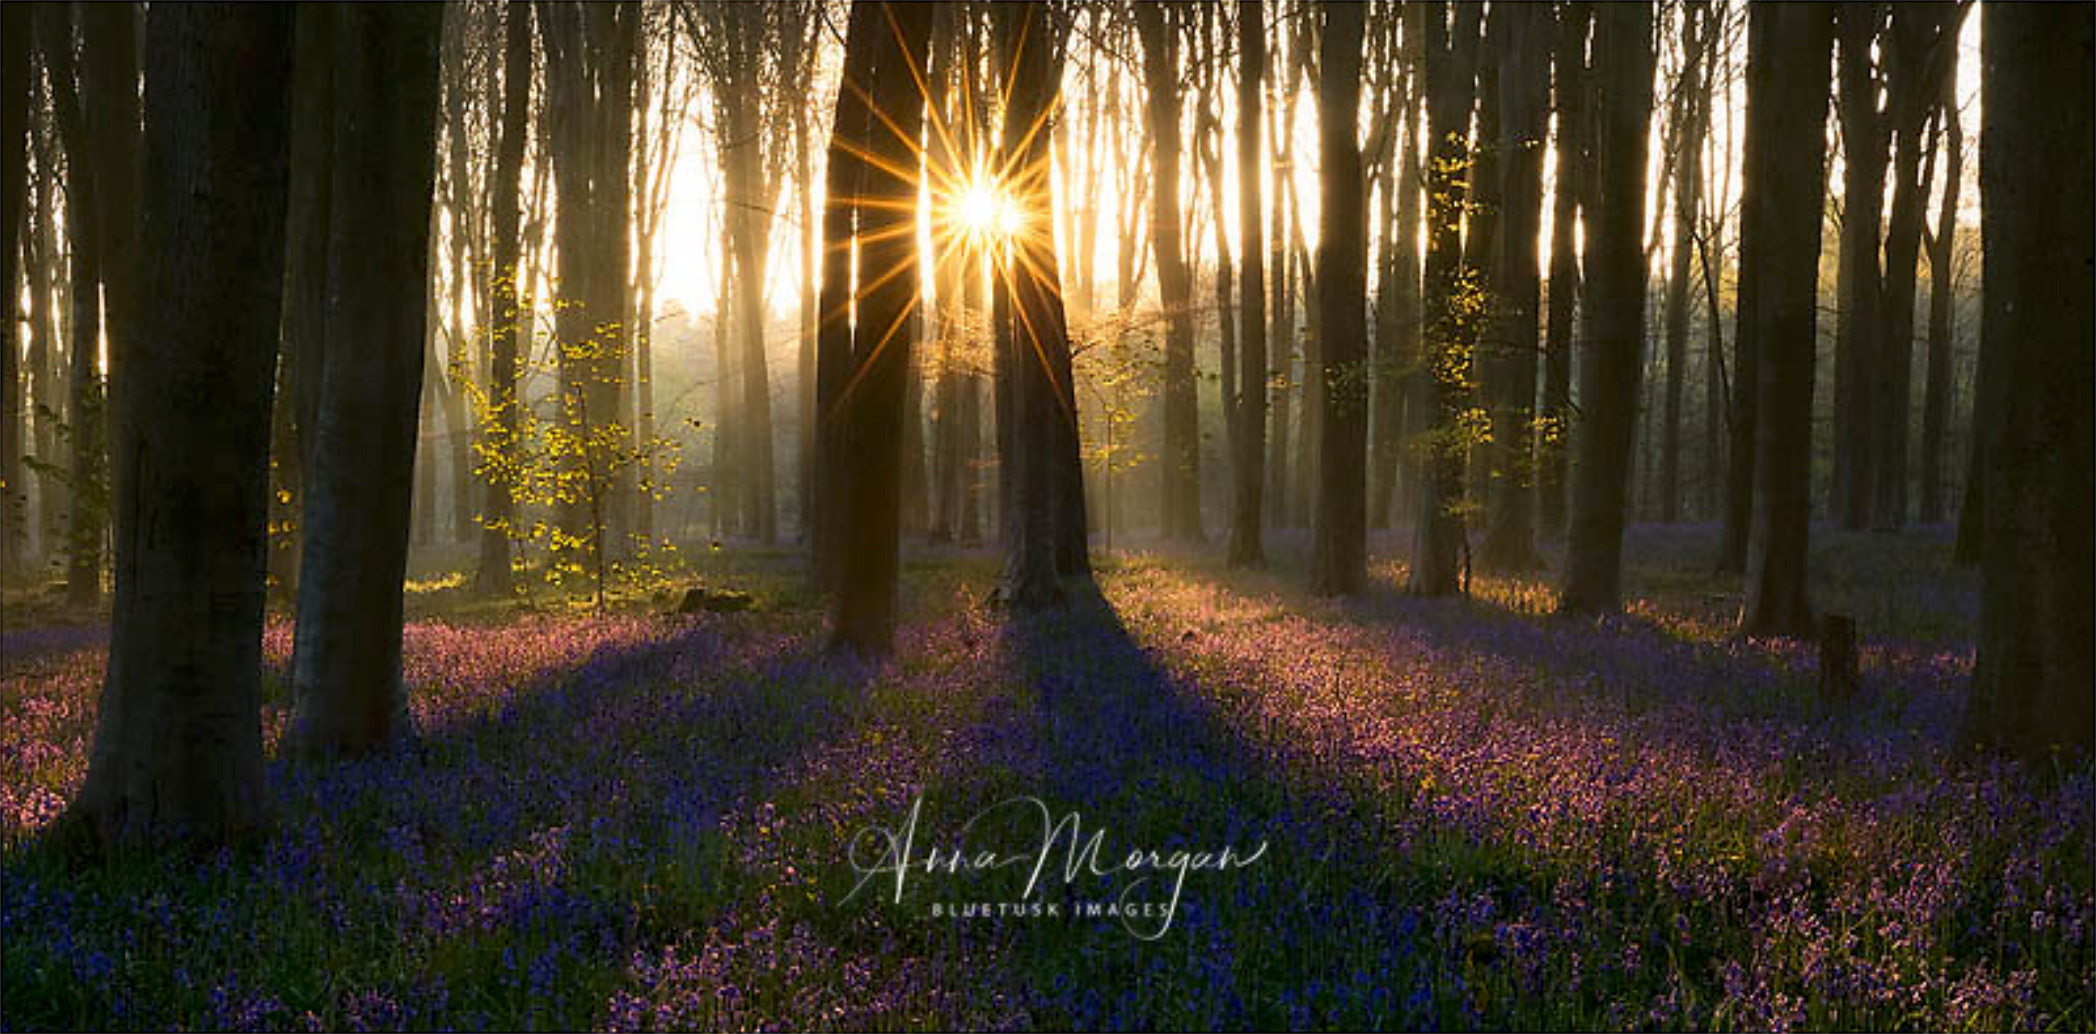 """""""Convergence""""- Anna Morgan. Perfect carpet of flowers, fog, and a sunstar. Wait, a DOUBLE sunstar? Are you kidding me?!?The atmosphere is classy but ethereal, a hallmark of her collection."""